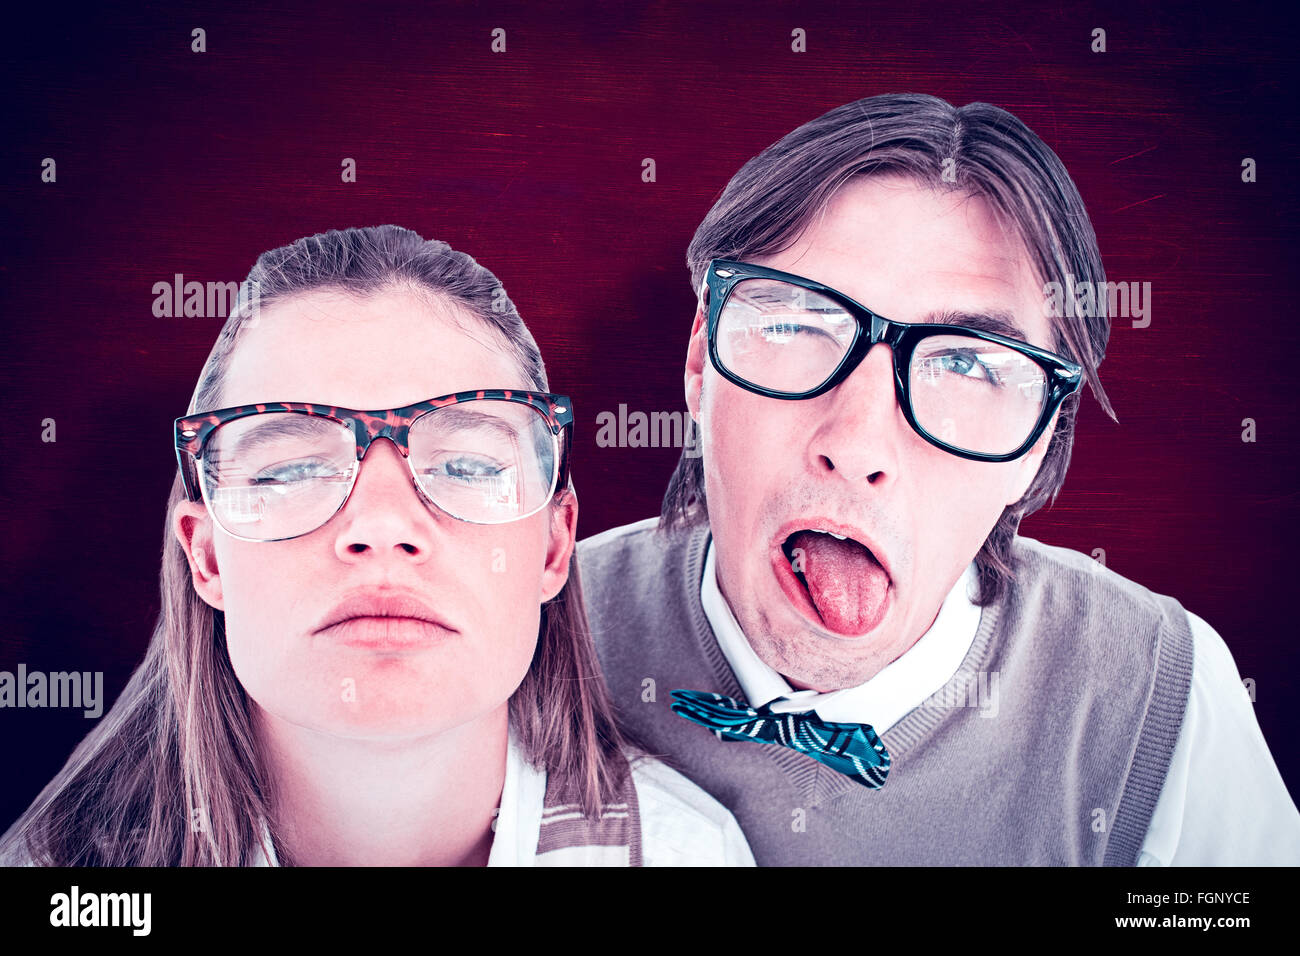 Composite image of funny geeky hipsters grimacing Stock Photo